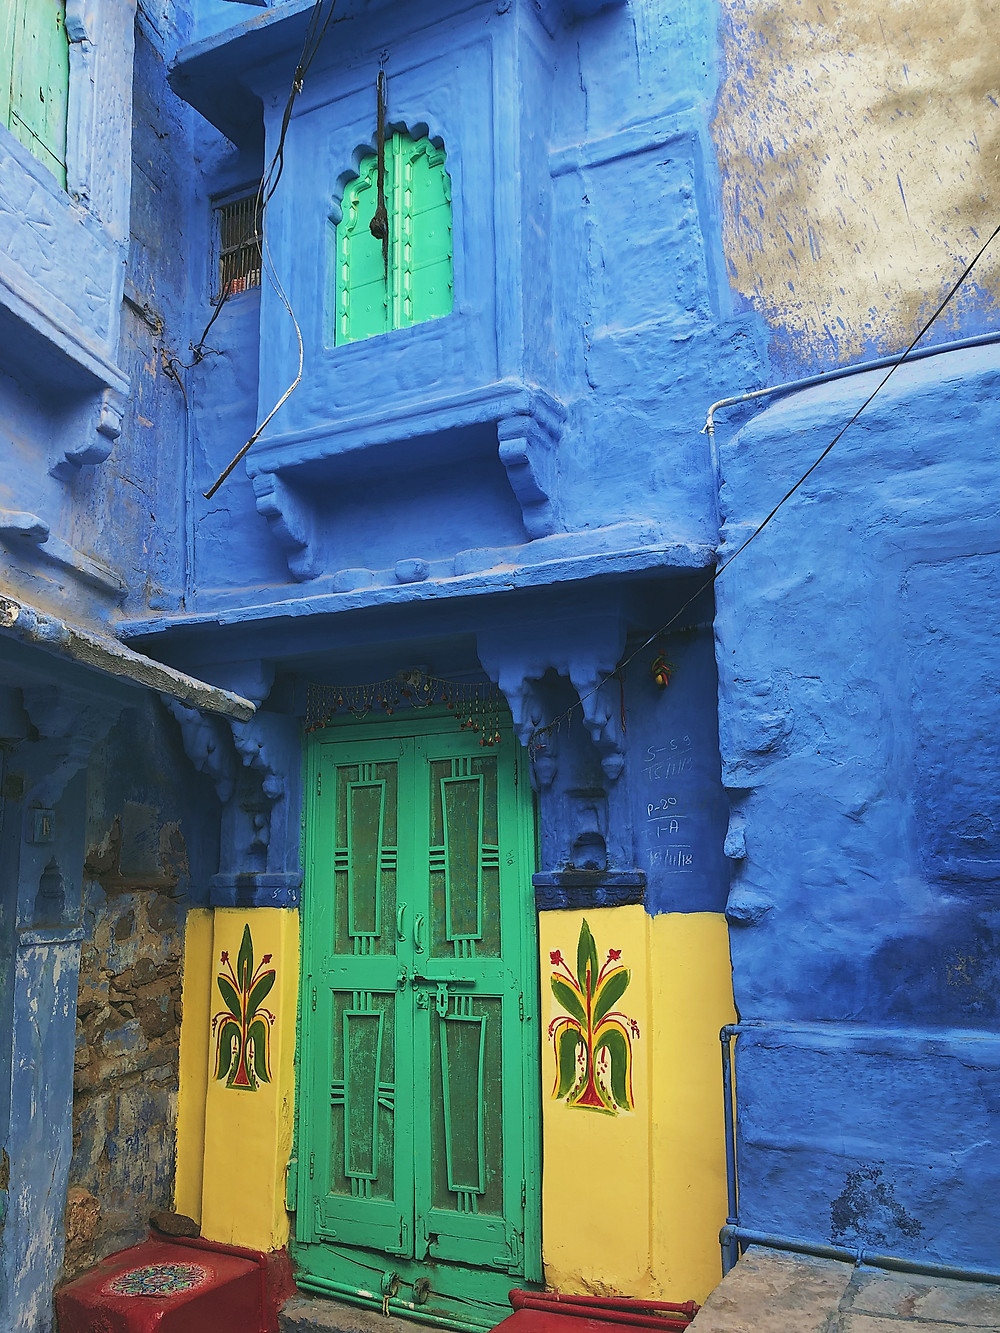 Blue house in Jodhpur, Rajasthan, India